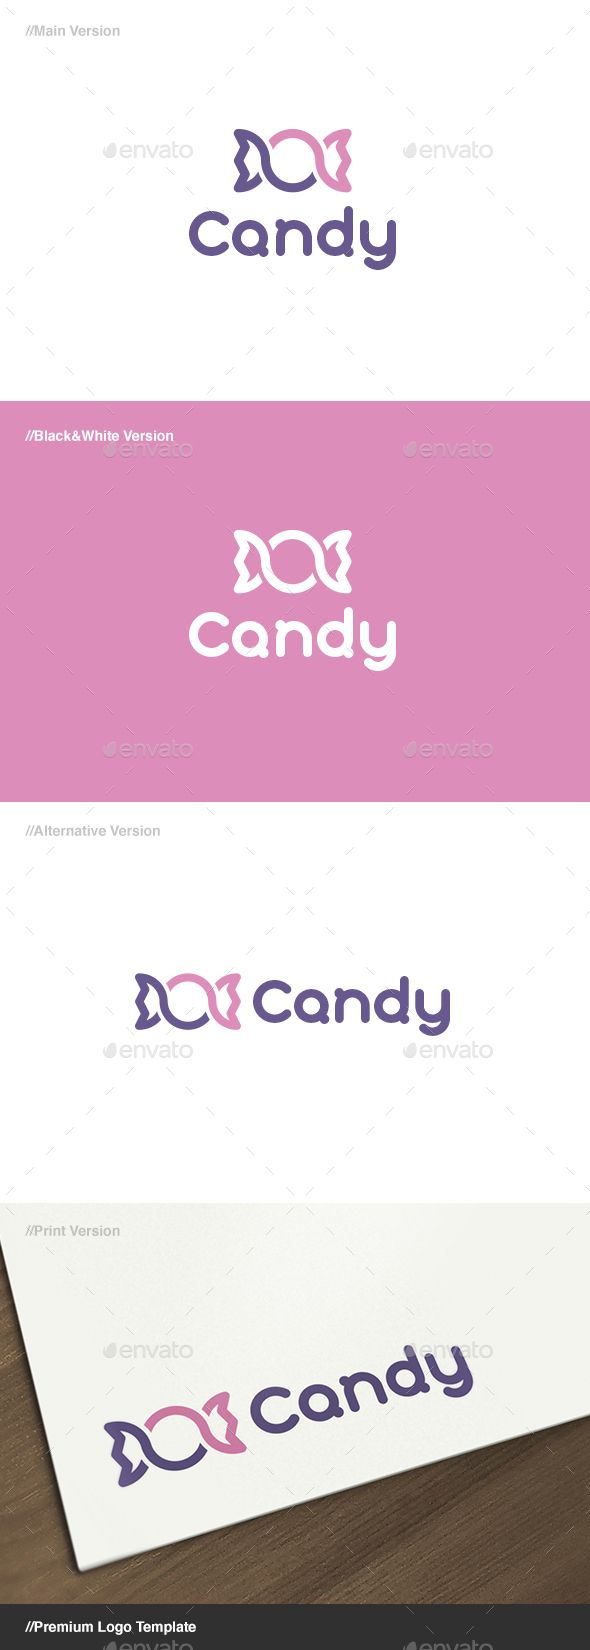 Candy Logo - EPS Template • Only available here ➝ http://graphicriver.net/item/candy-logo/13940072?ref=pxcr                                                                                                                                                                                 More